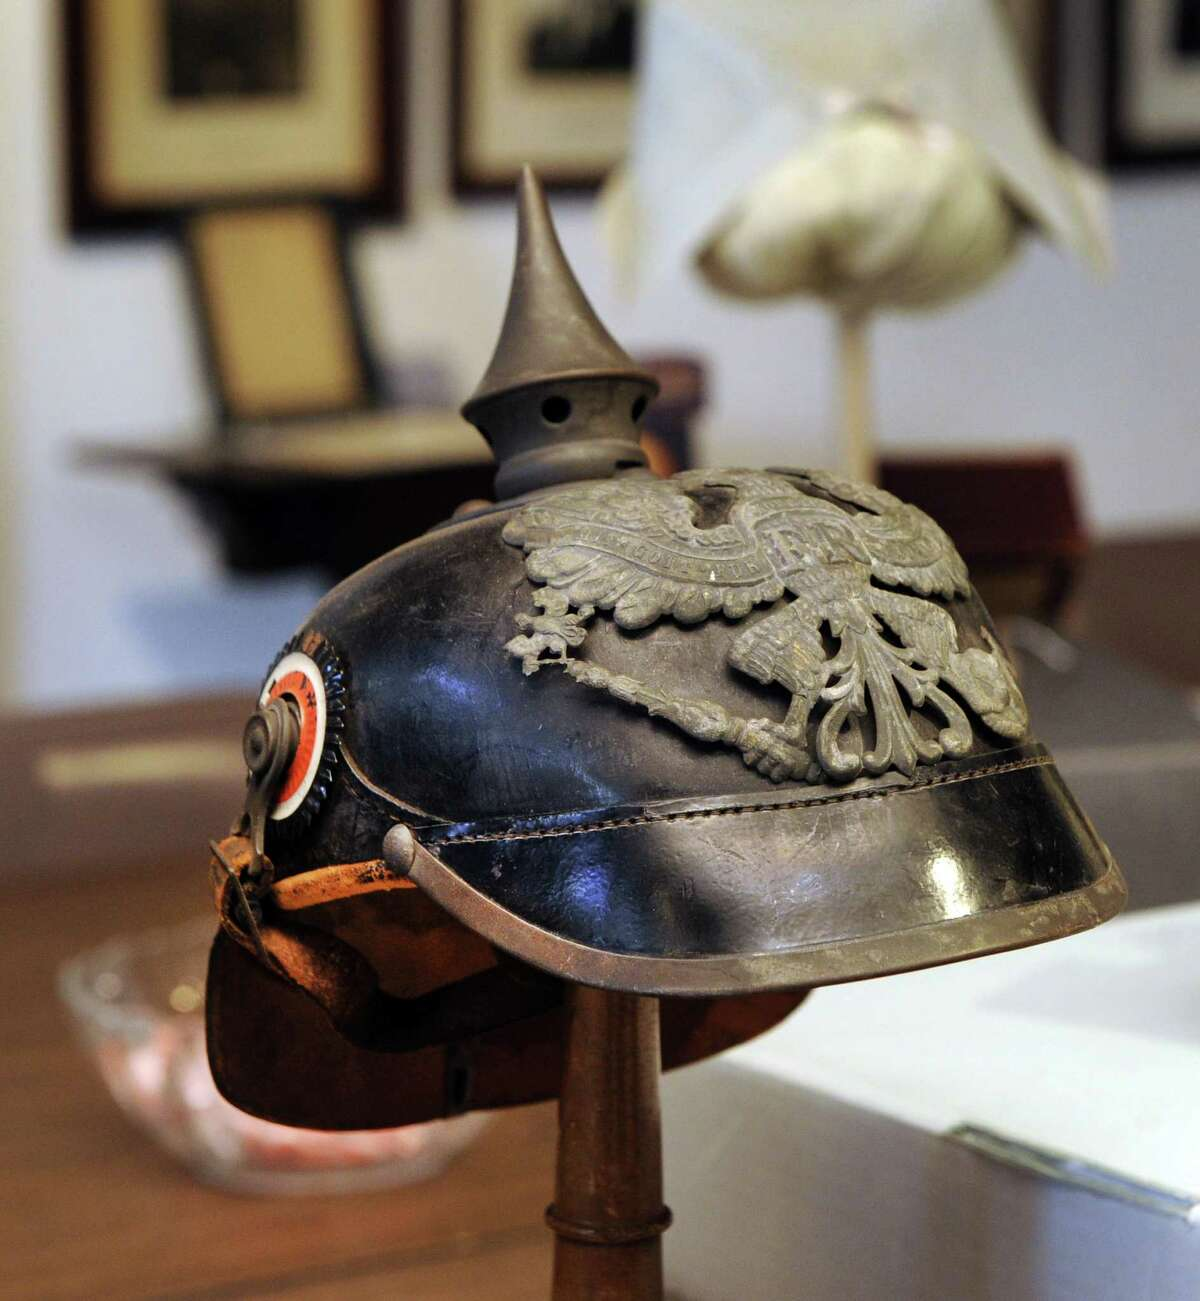 The New Milford Historical Society and Museum is preparing an exhibit of World War I memoribilia and artifacts, including this German helmet. Photo Friday, Dec. 30, 2016.